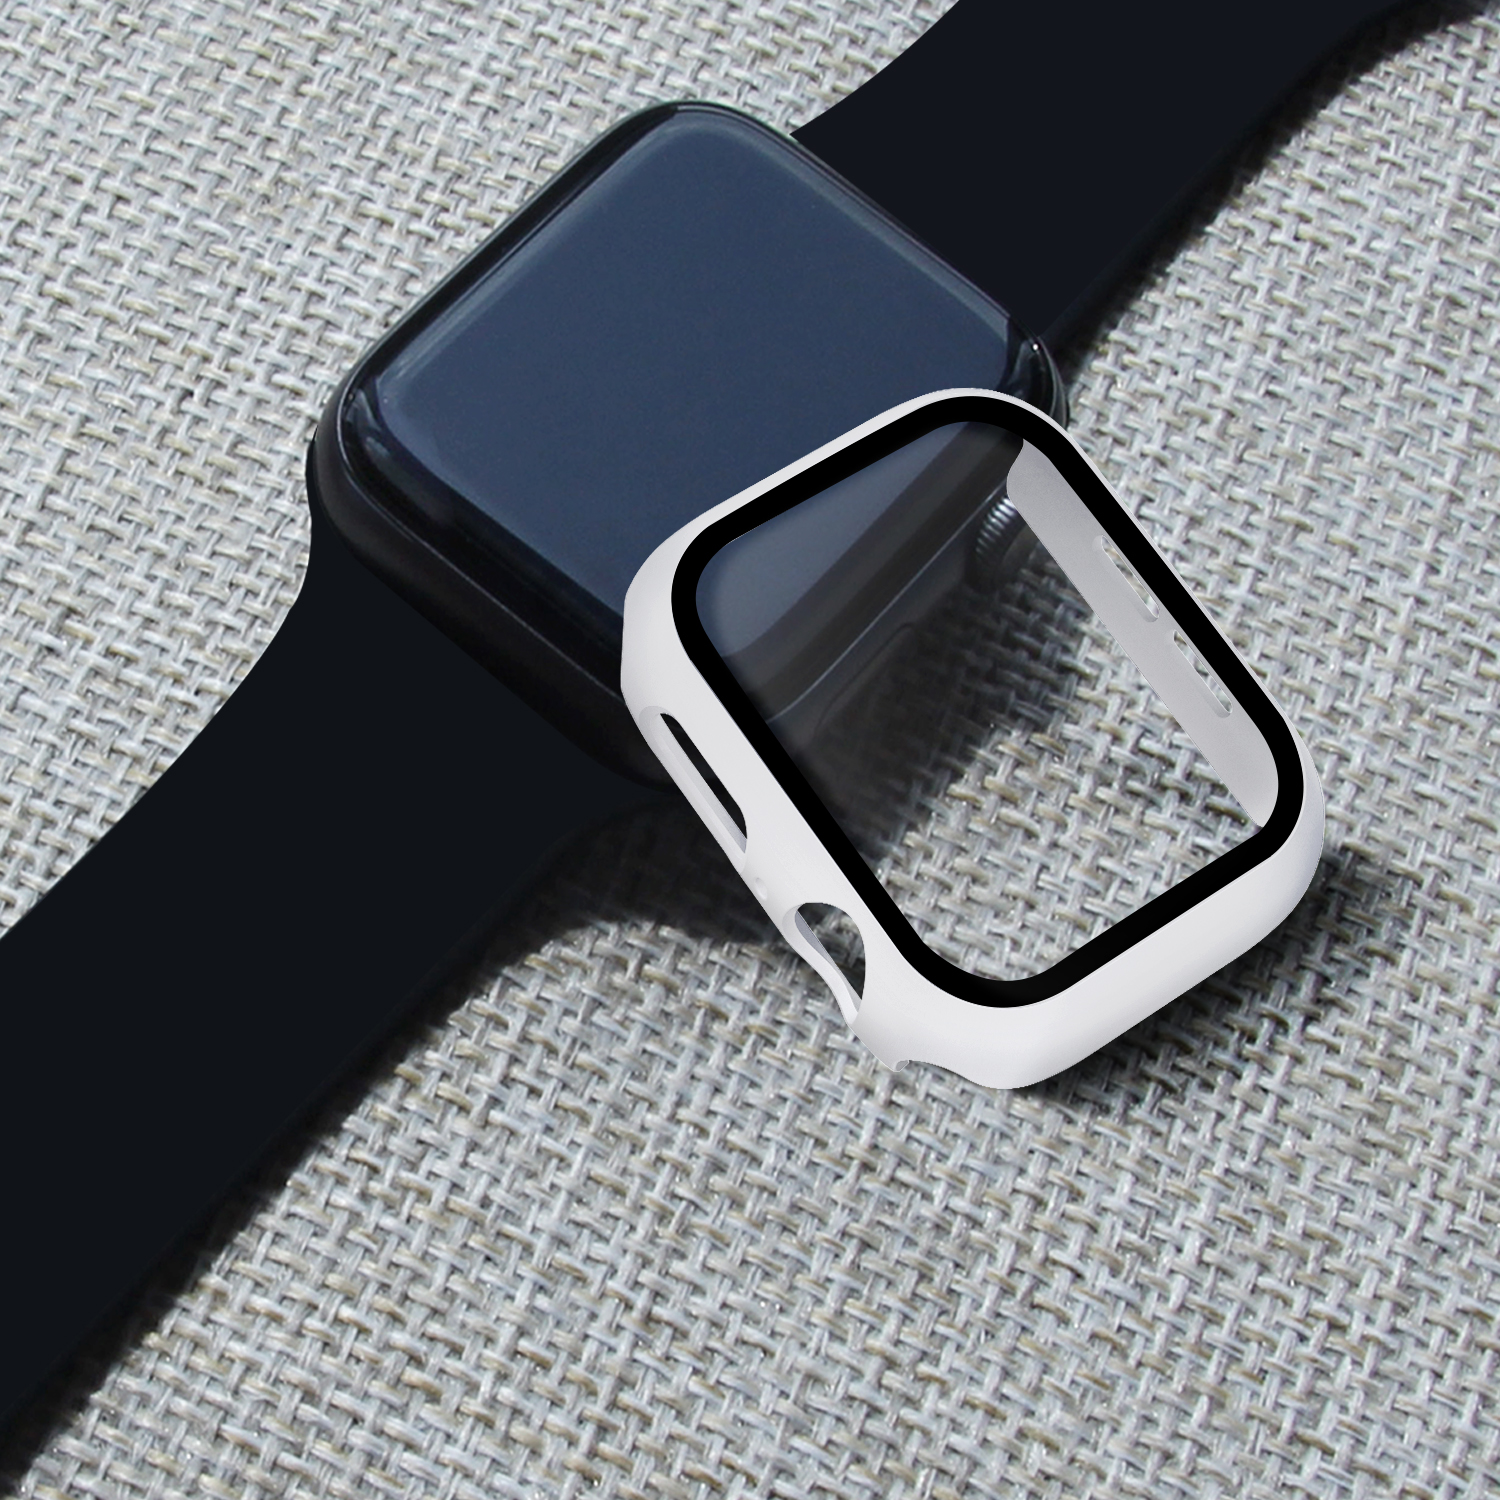 Watch Cover Case for Apple Watch 5/4 40MM/44MM PC Bumper with Glass Protector Film for iwatch Series 3/2 38 42MM  accessories 5